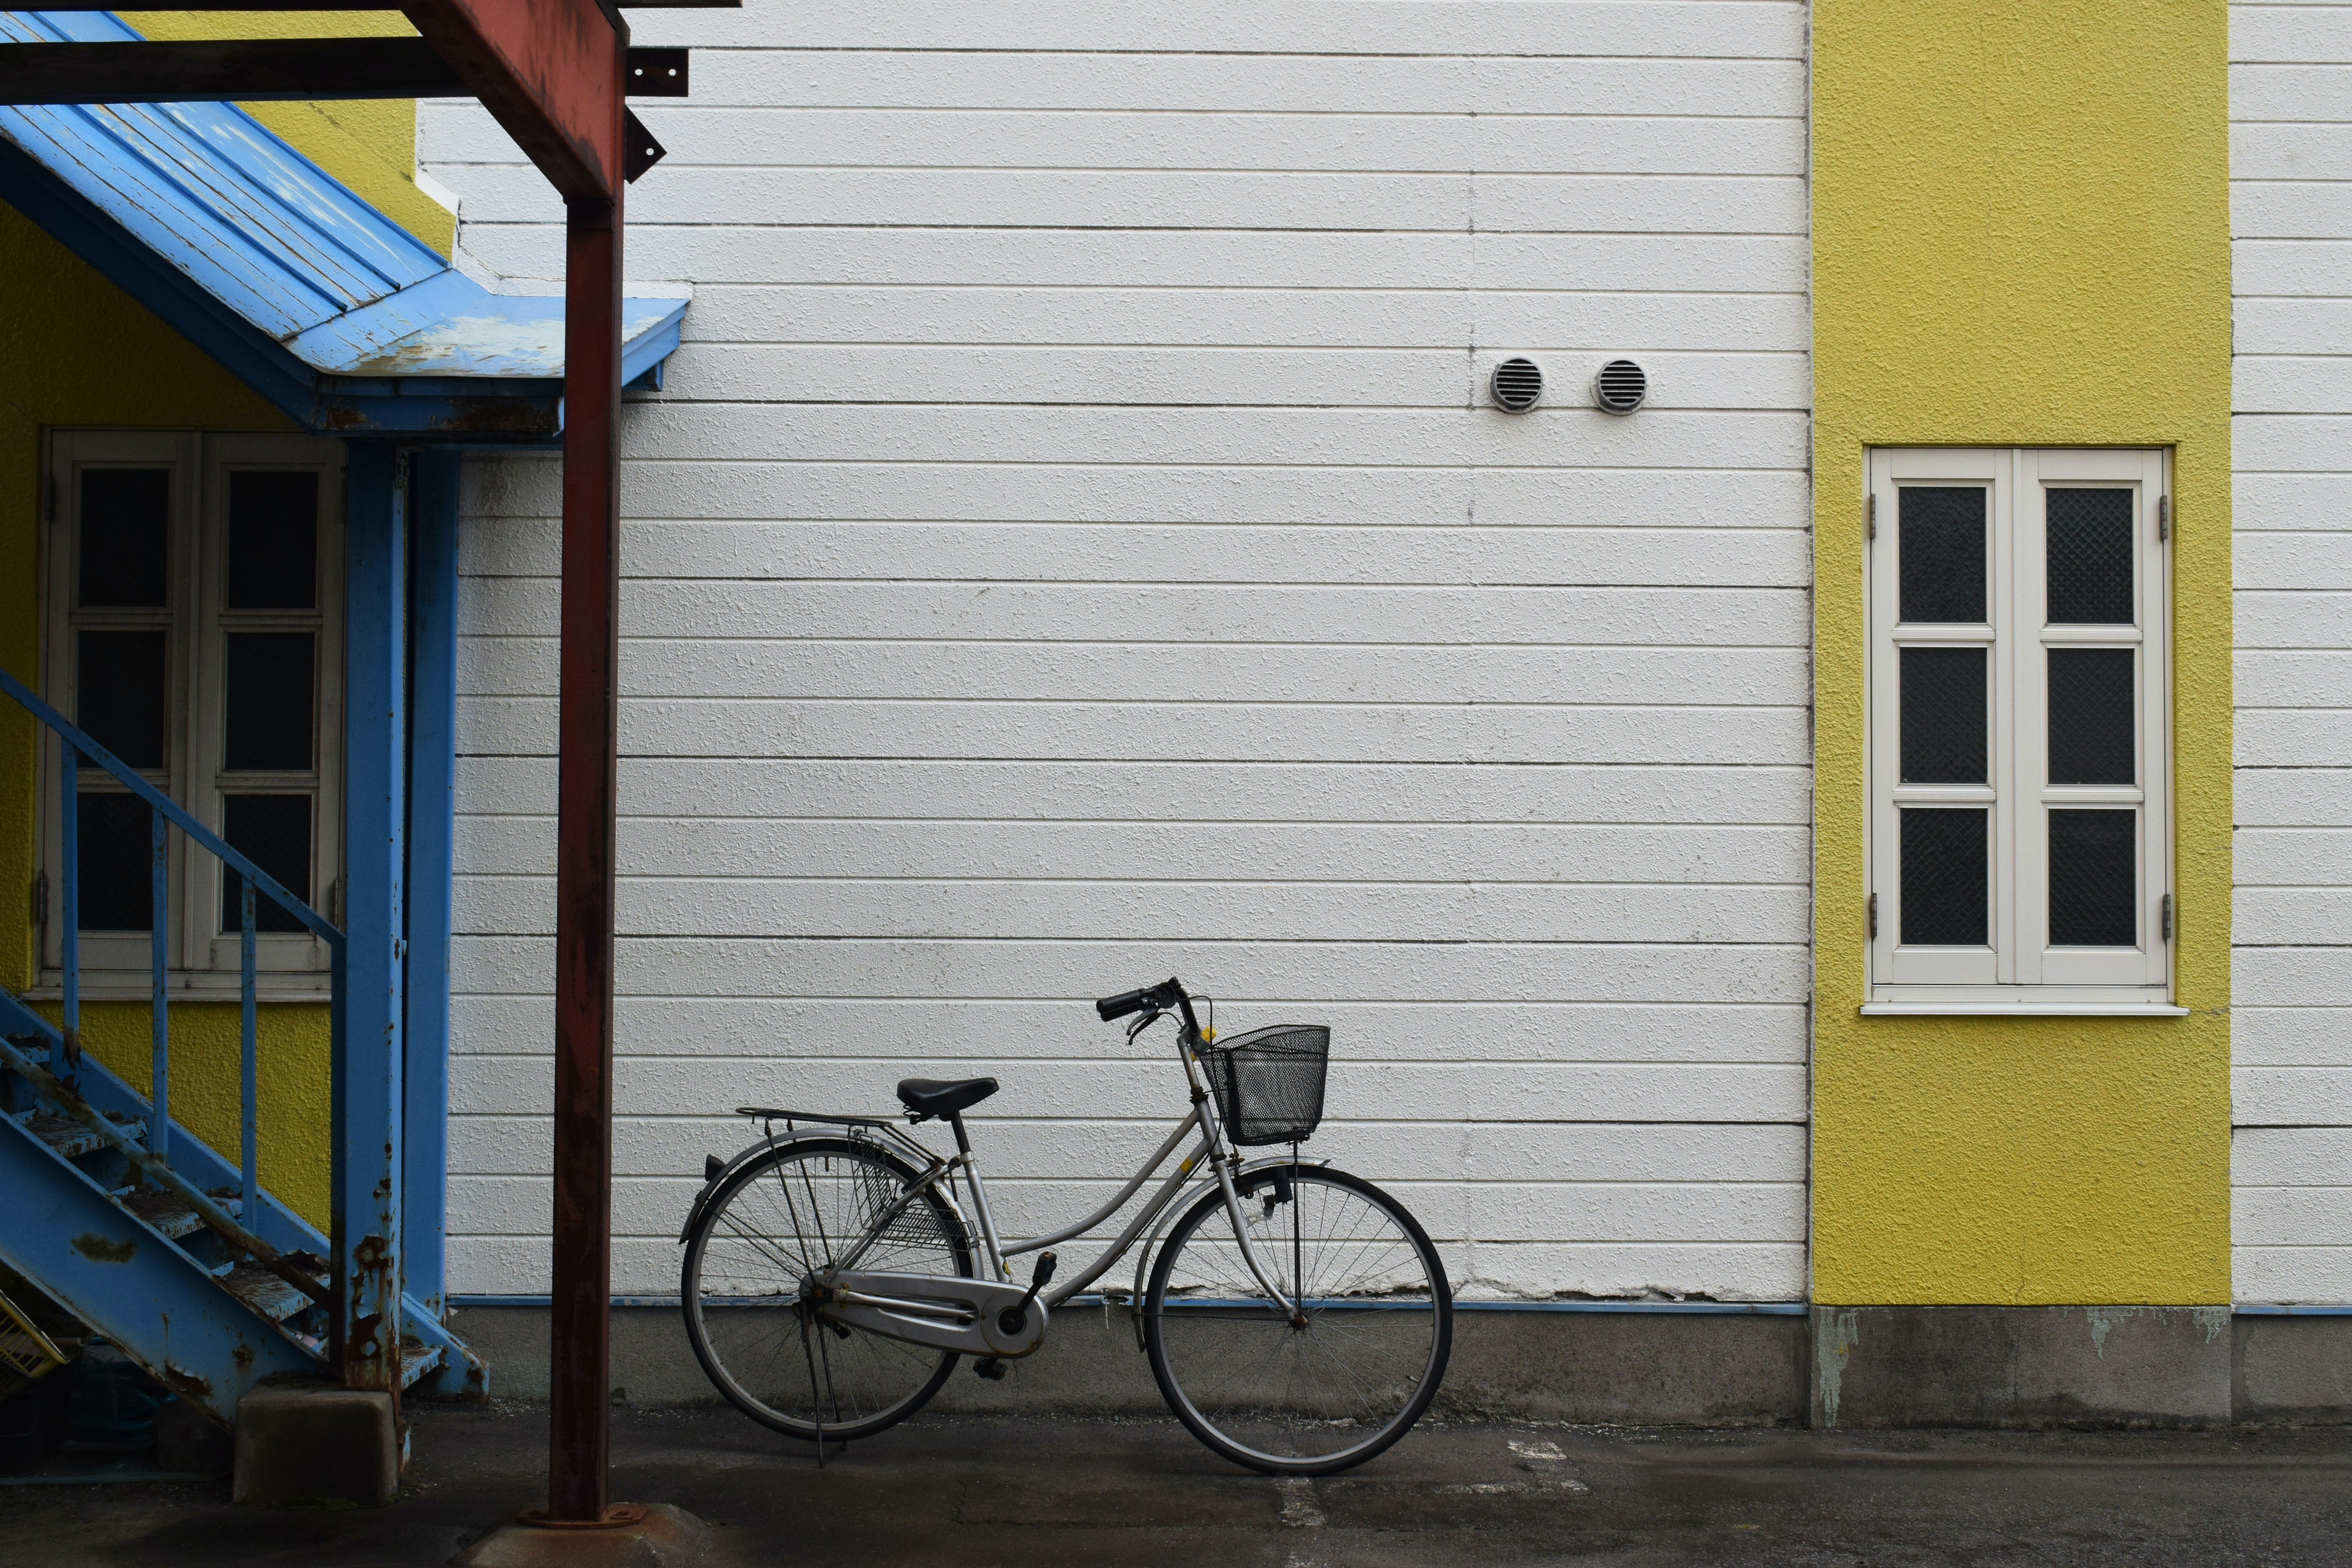 bike parked near stairs outdoor